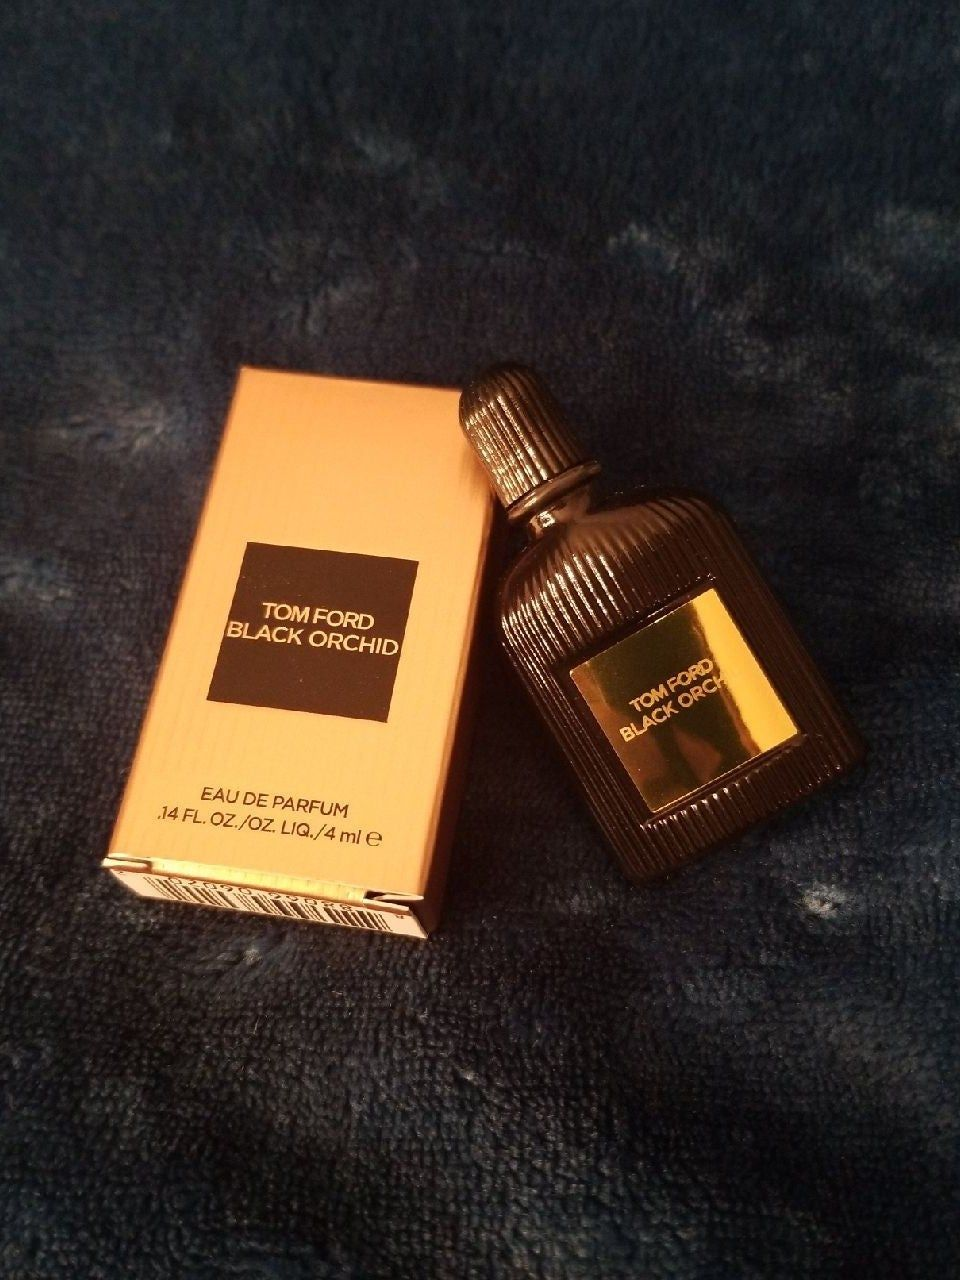 New Deluxe Sample Size Tom Ford Black Orchid Perfume 14 Fl Oz I Have Done My Best To List Items At A Fair Price Tom Ford Black Orchid Black Orchid Perfume